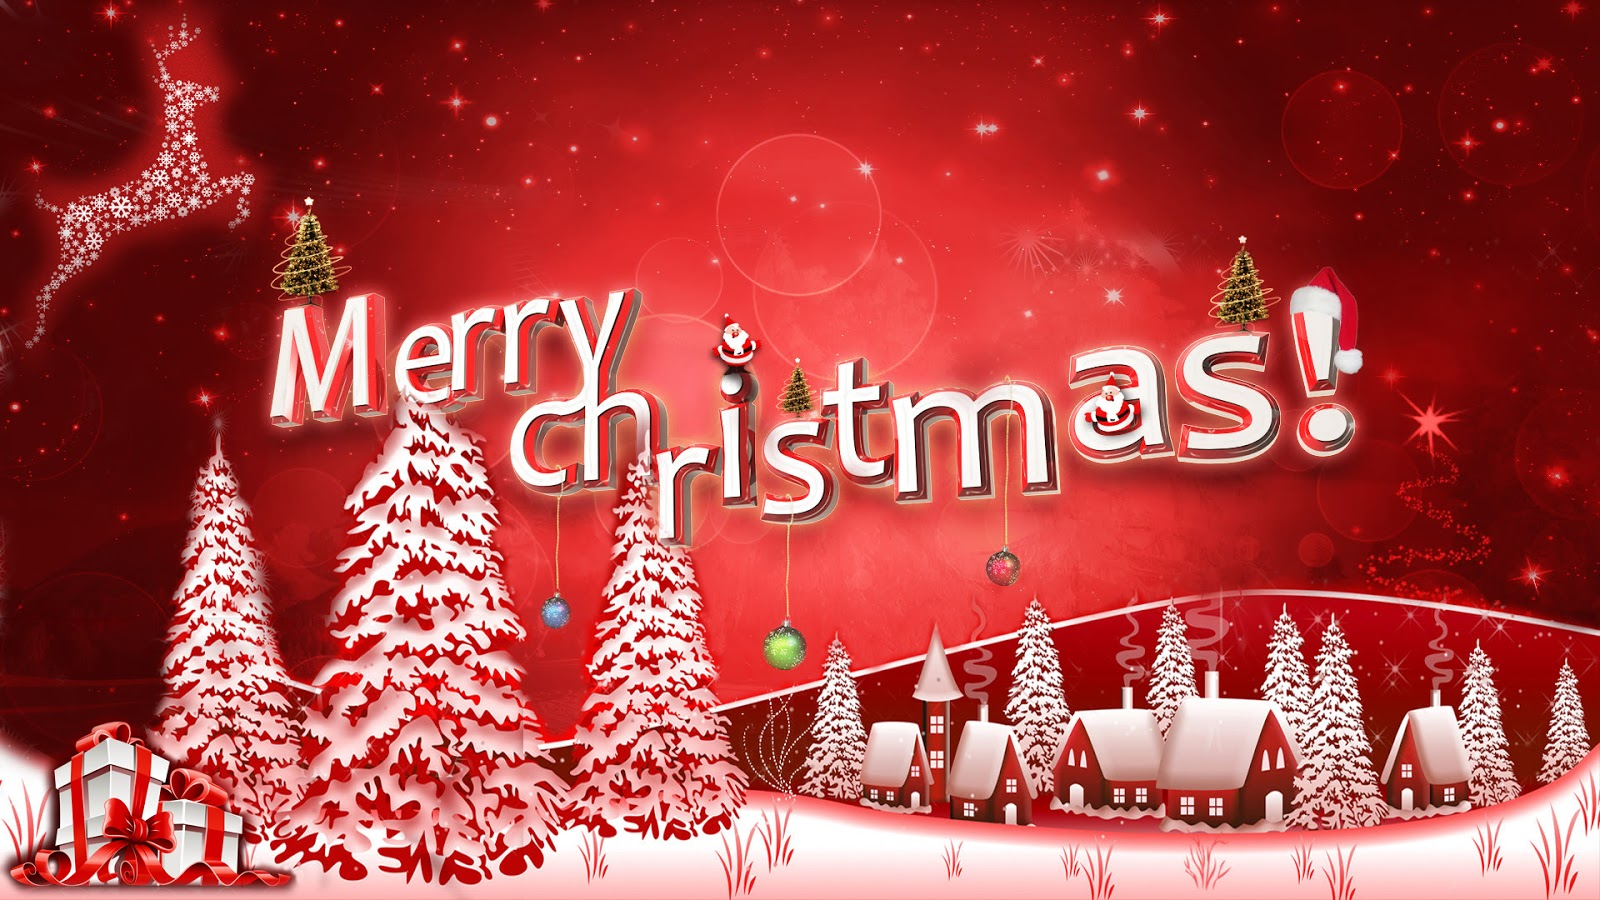 Top 20 Merry Christmas Images | Pictures | Wallpapers | Merry ...